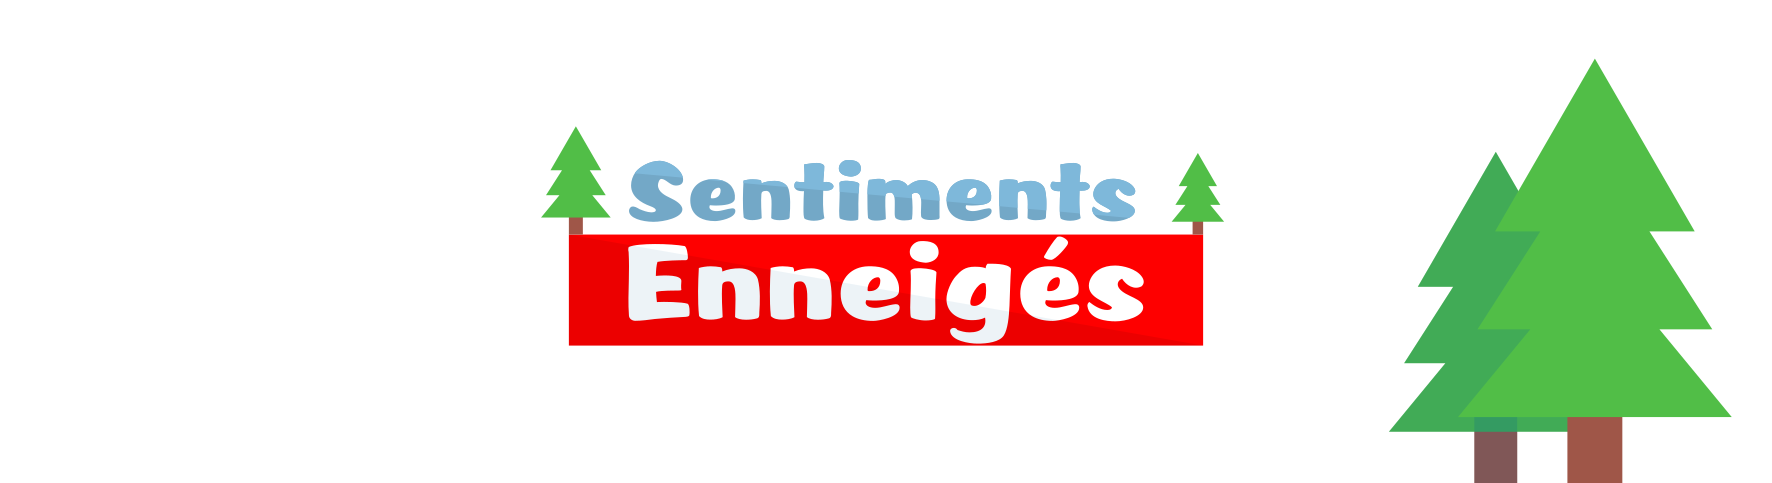 Sentiments Enneigés [Short, EN, FR]